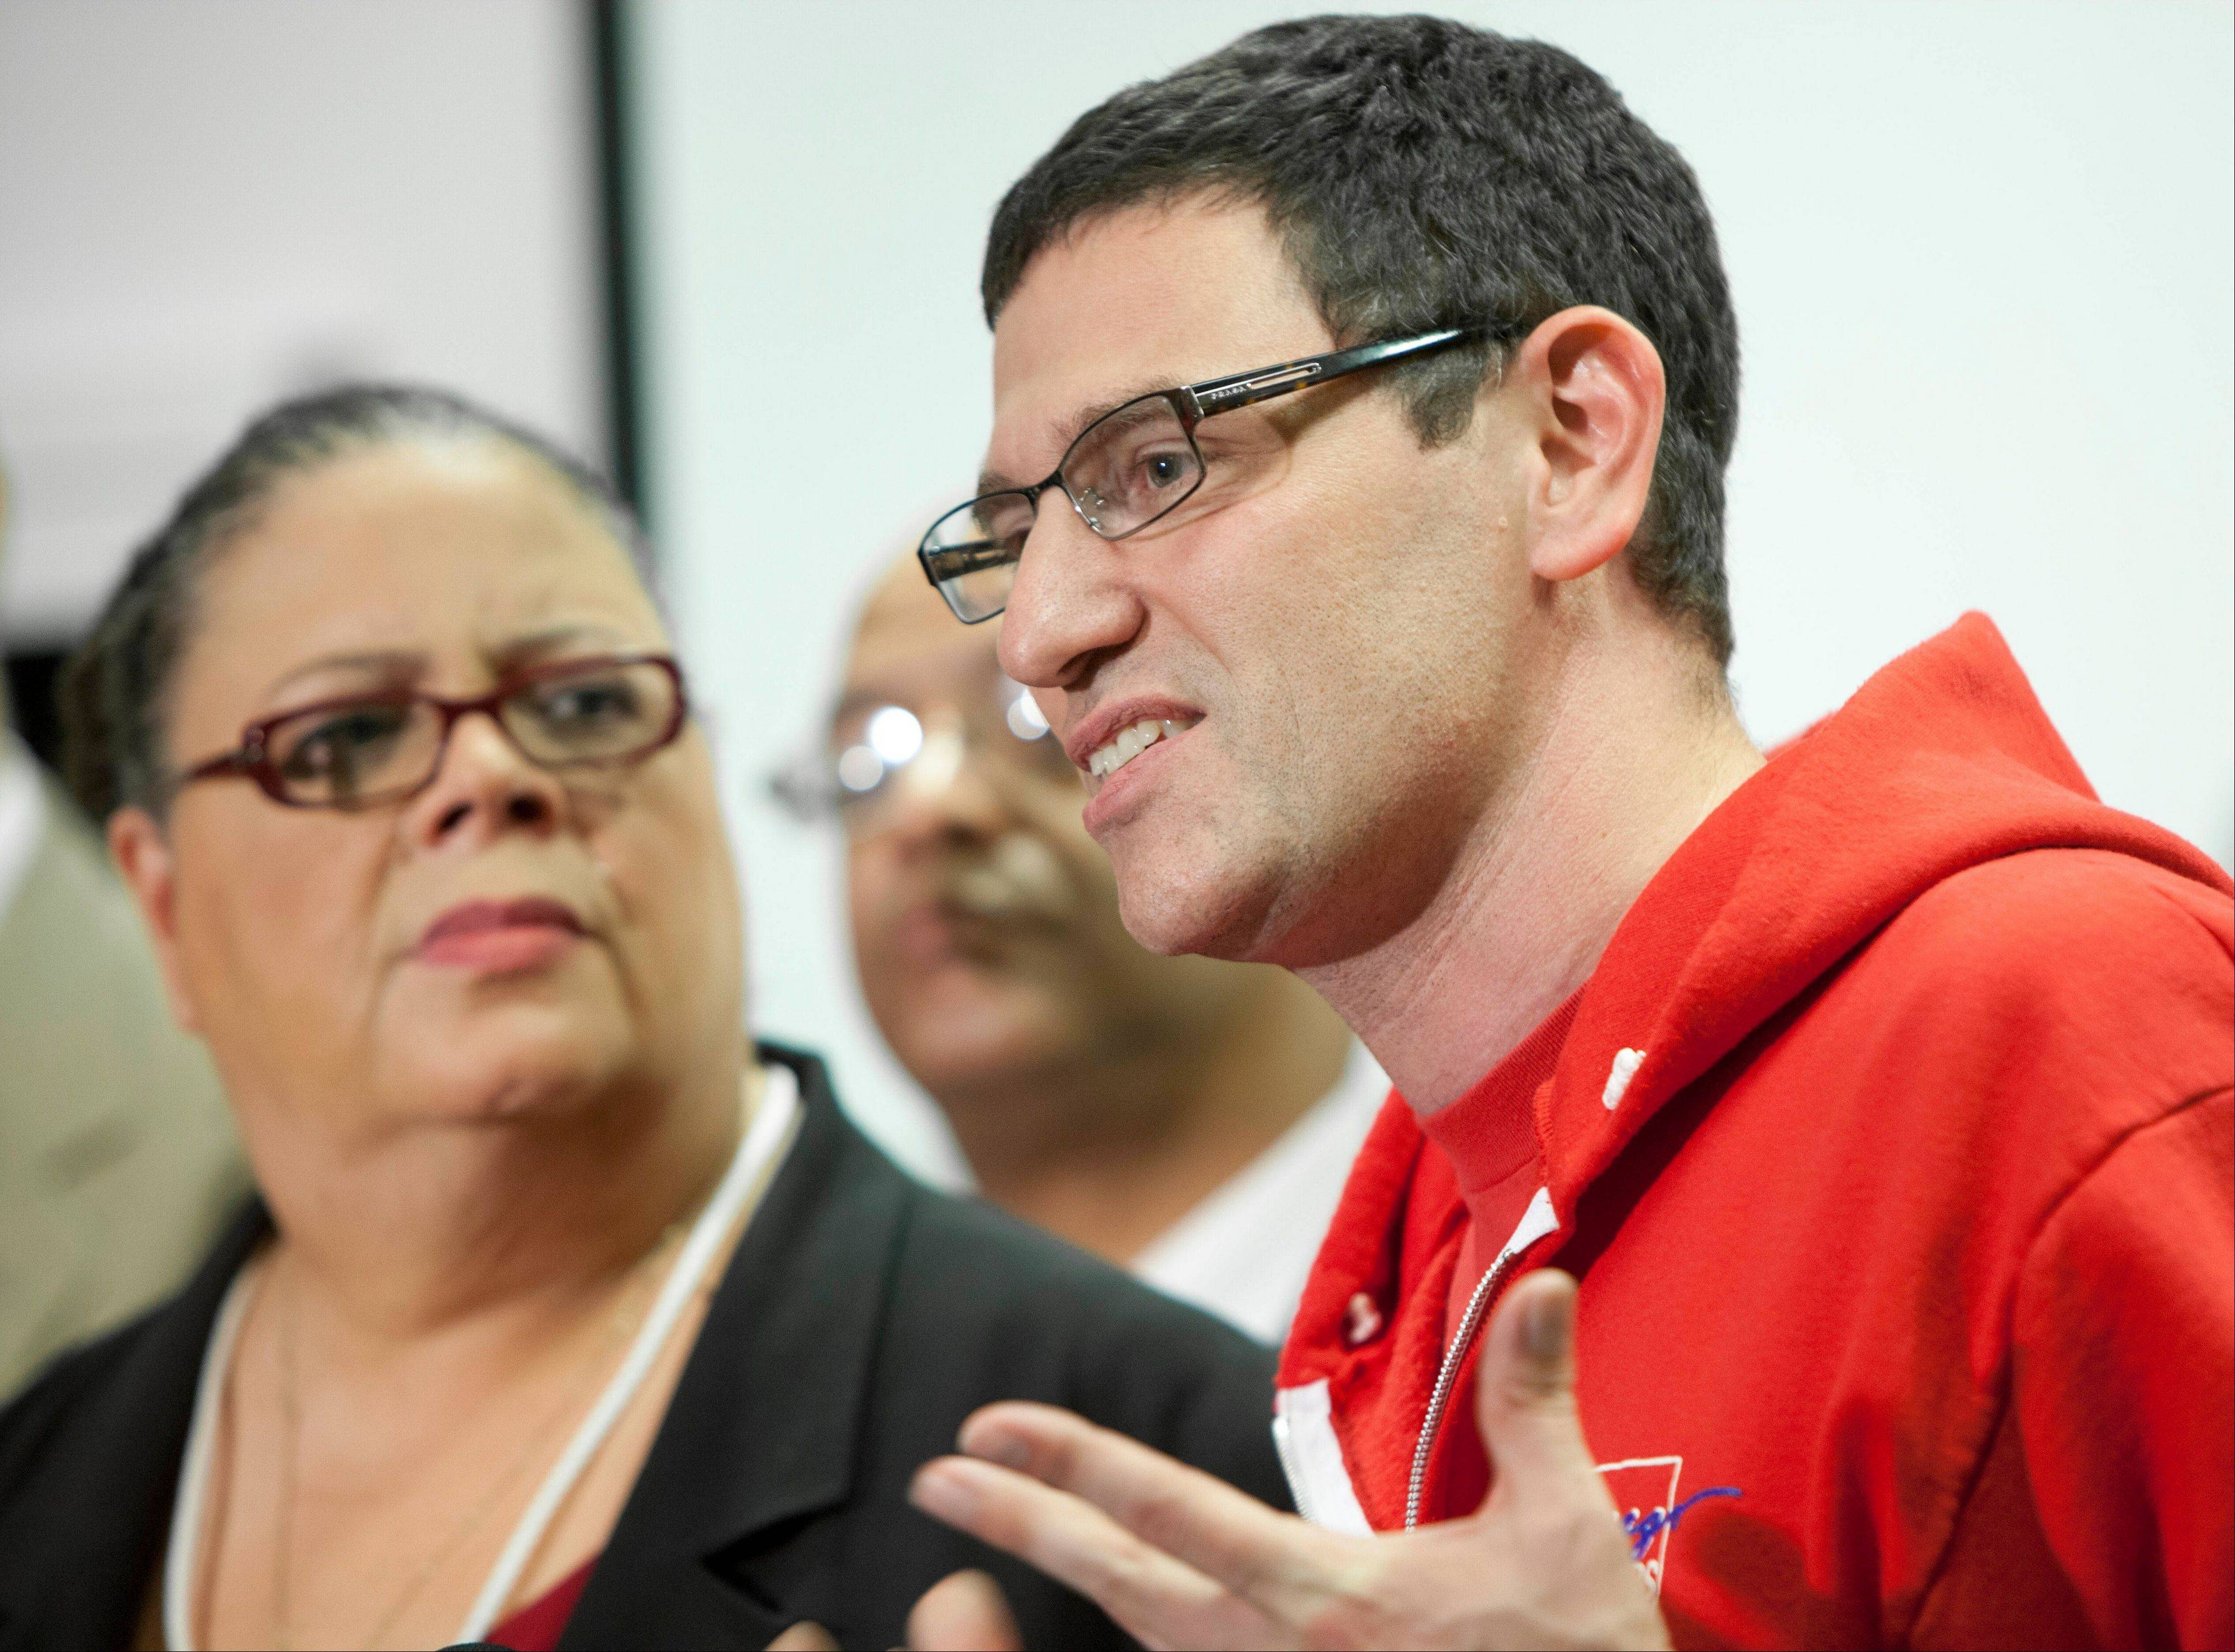 Chicago Teachers Union President Karen Lewis, left, listens to CTU Vice President Jesse Sharkey speak Sunday at a press conference following a meeting of delegates in Chicago. The Chicago teachers union decided Sunday to continue its weeklong strike, extending an acrimonious standoff with Mayor Rahm Emanuel over teacher evaluations and job security provisions central to the debate over the future of public education across the United States.